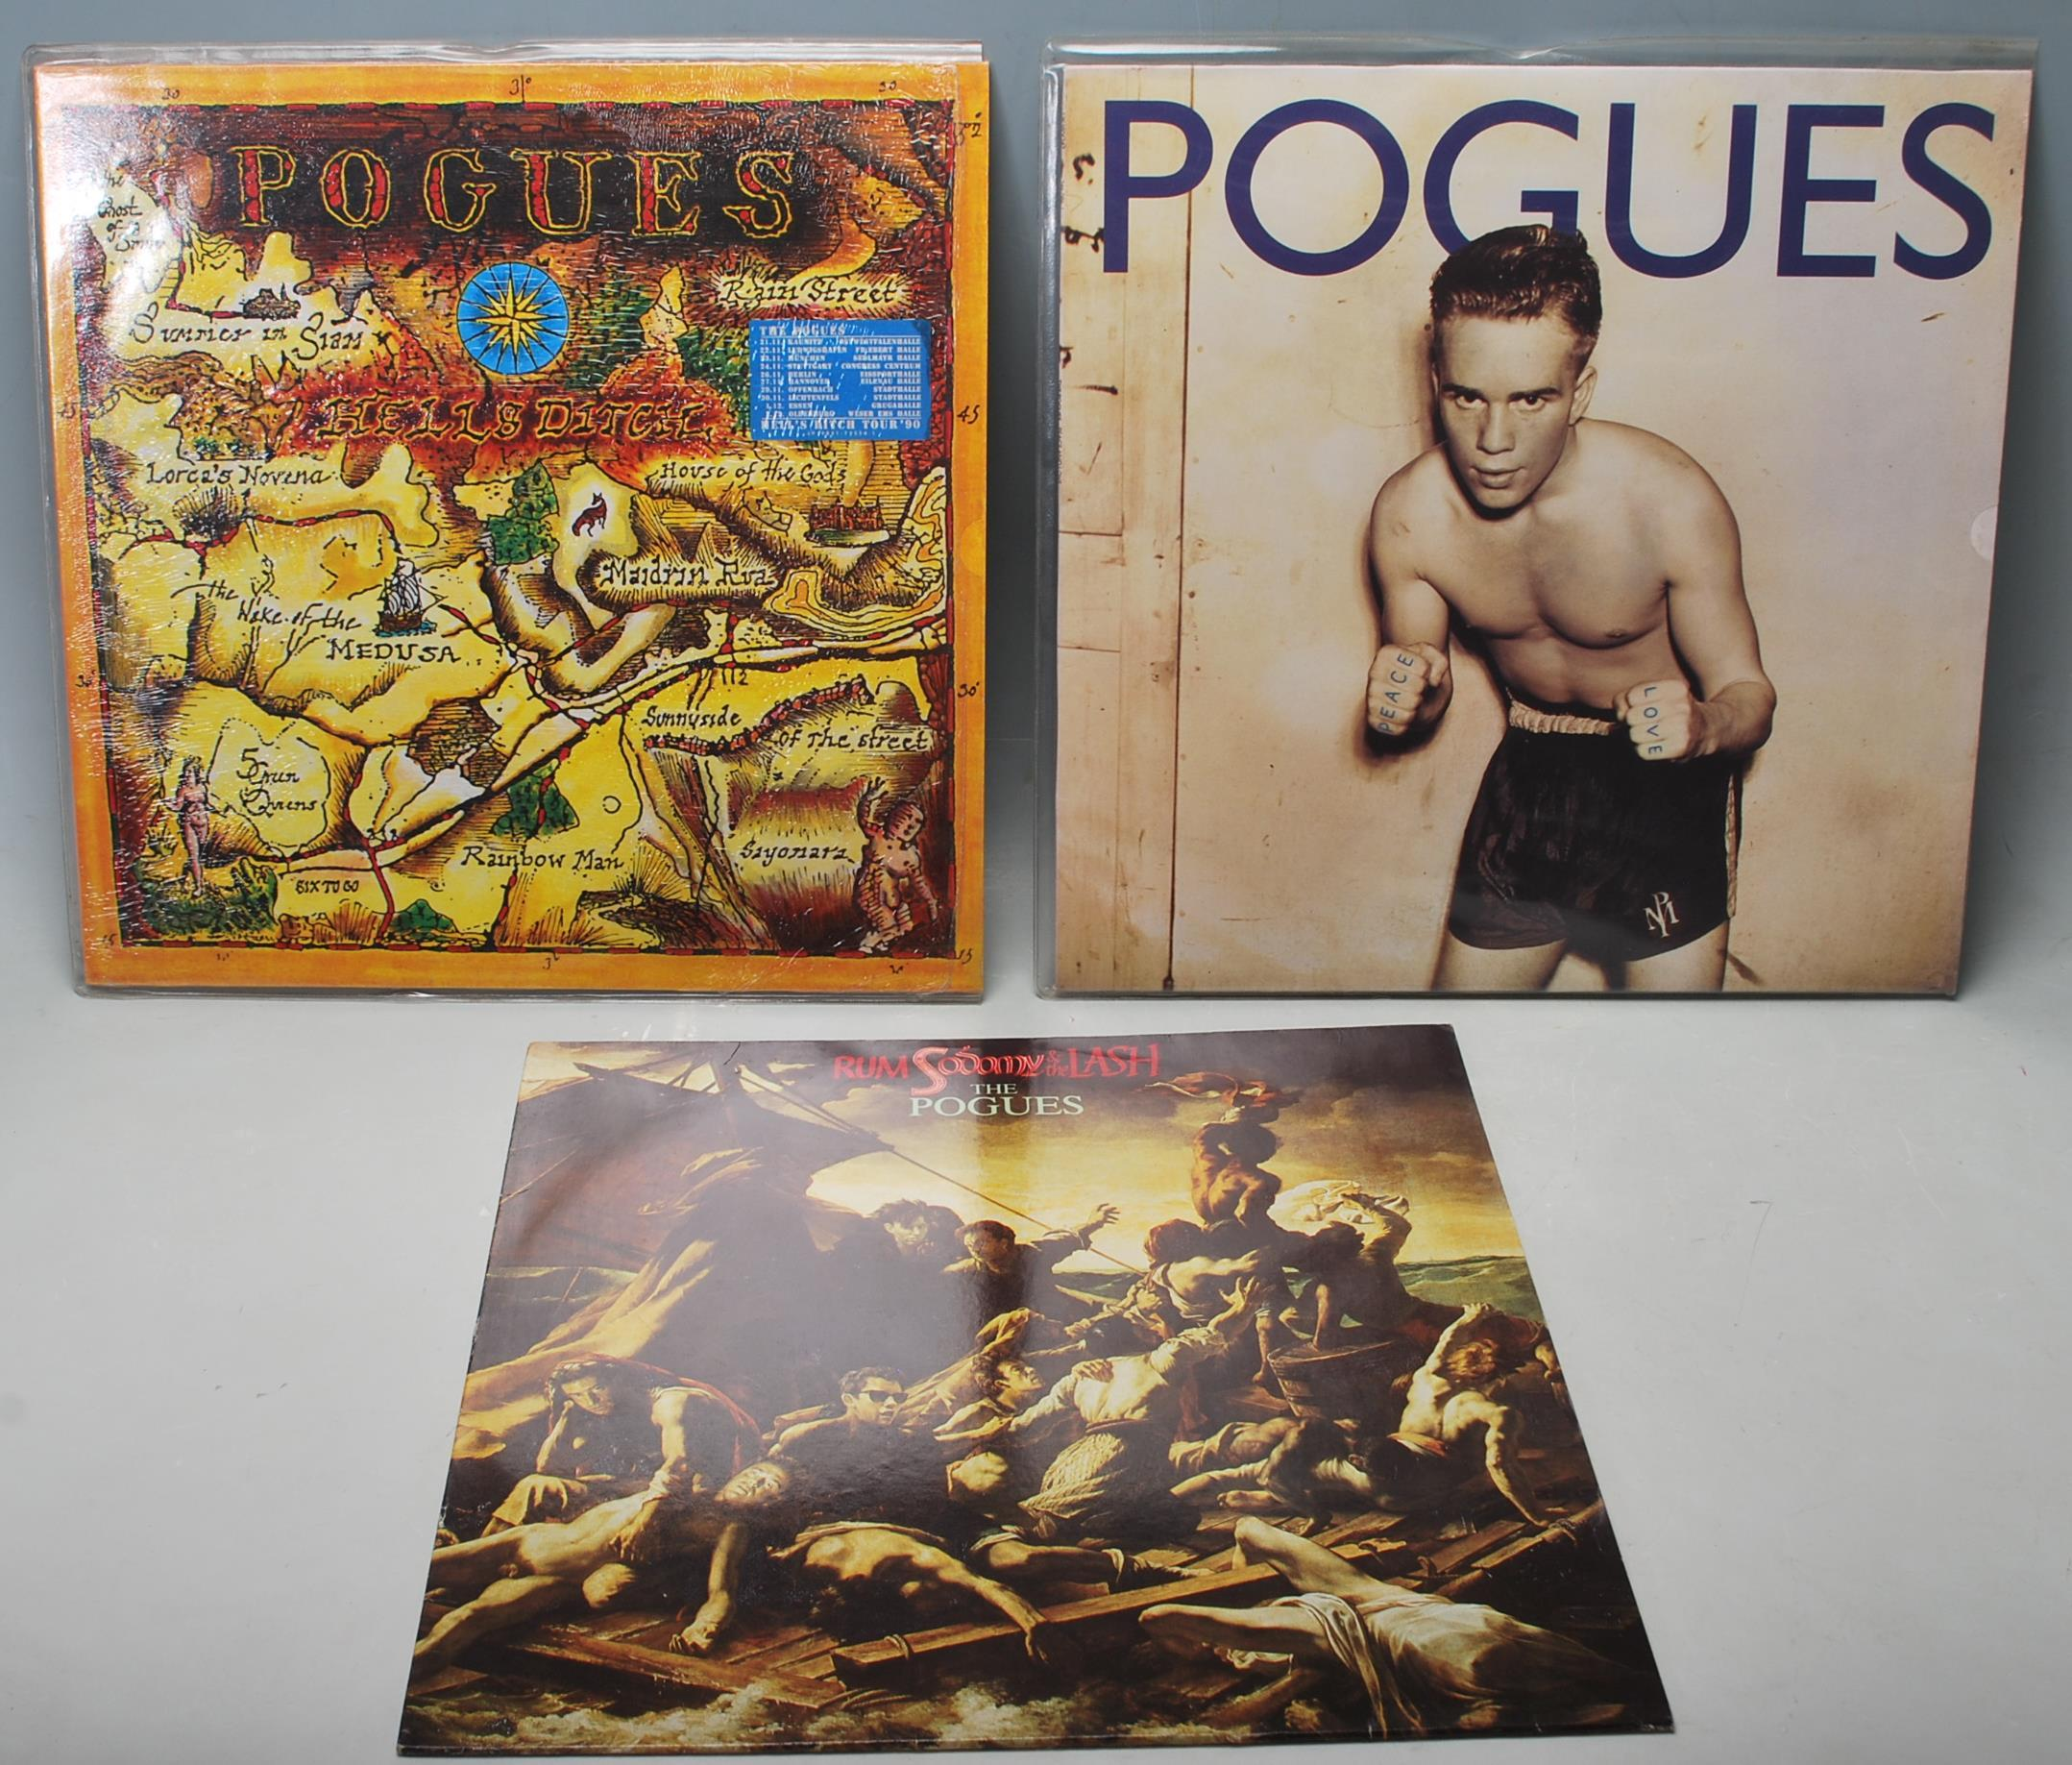 A collection of three vintage vinyl records by The Pogues to include Peace...